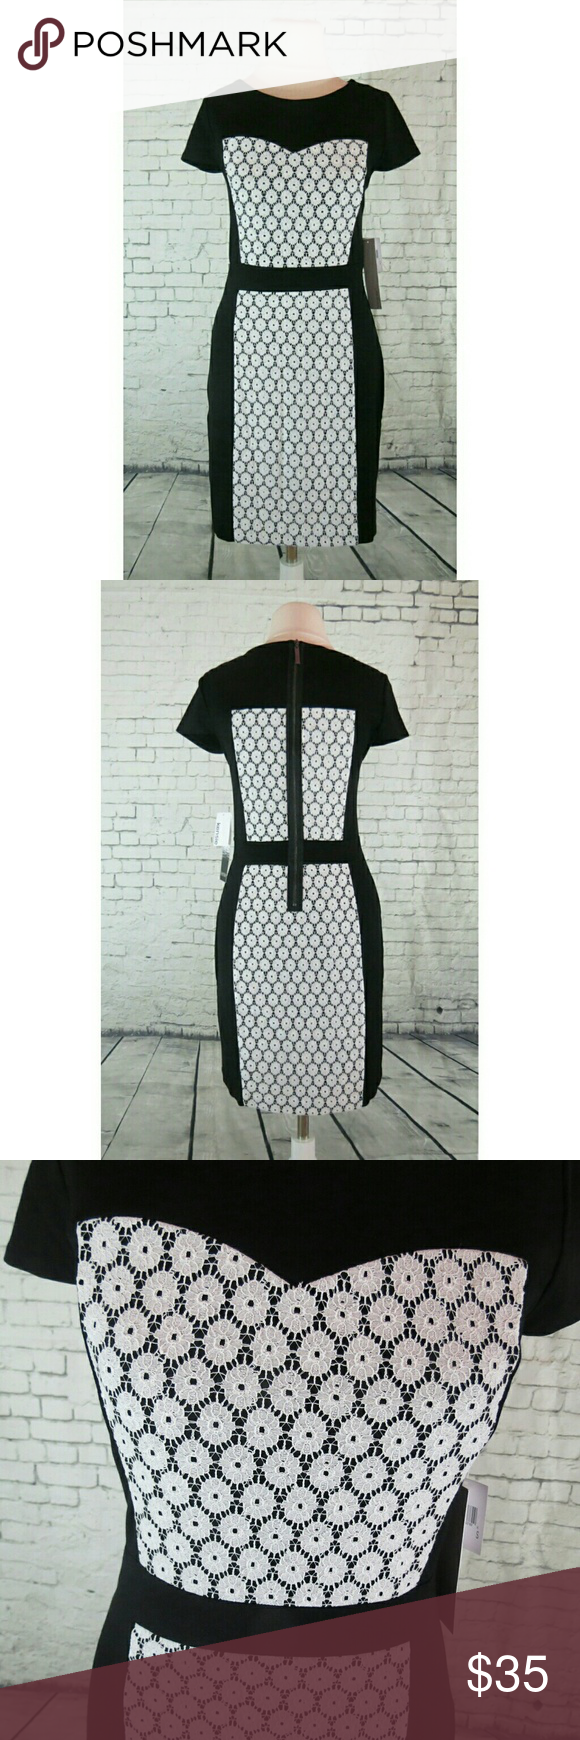 Selling this Kensie Dove Combo Lace Contrast Ponte sheath Dress on Poshmark! My username is: dressitgirl. #shopmycloset #poshmark #fashion #shopping #style #forsale #Kensie #Dresses & Skirts